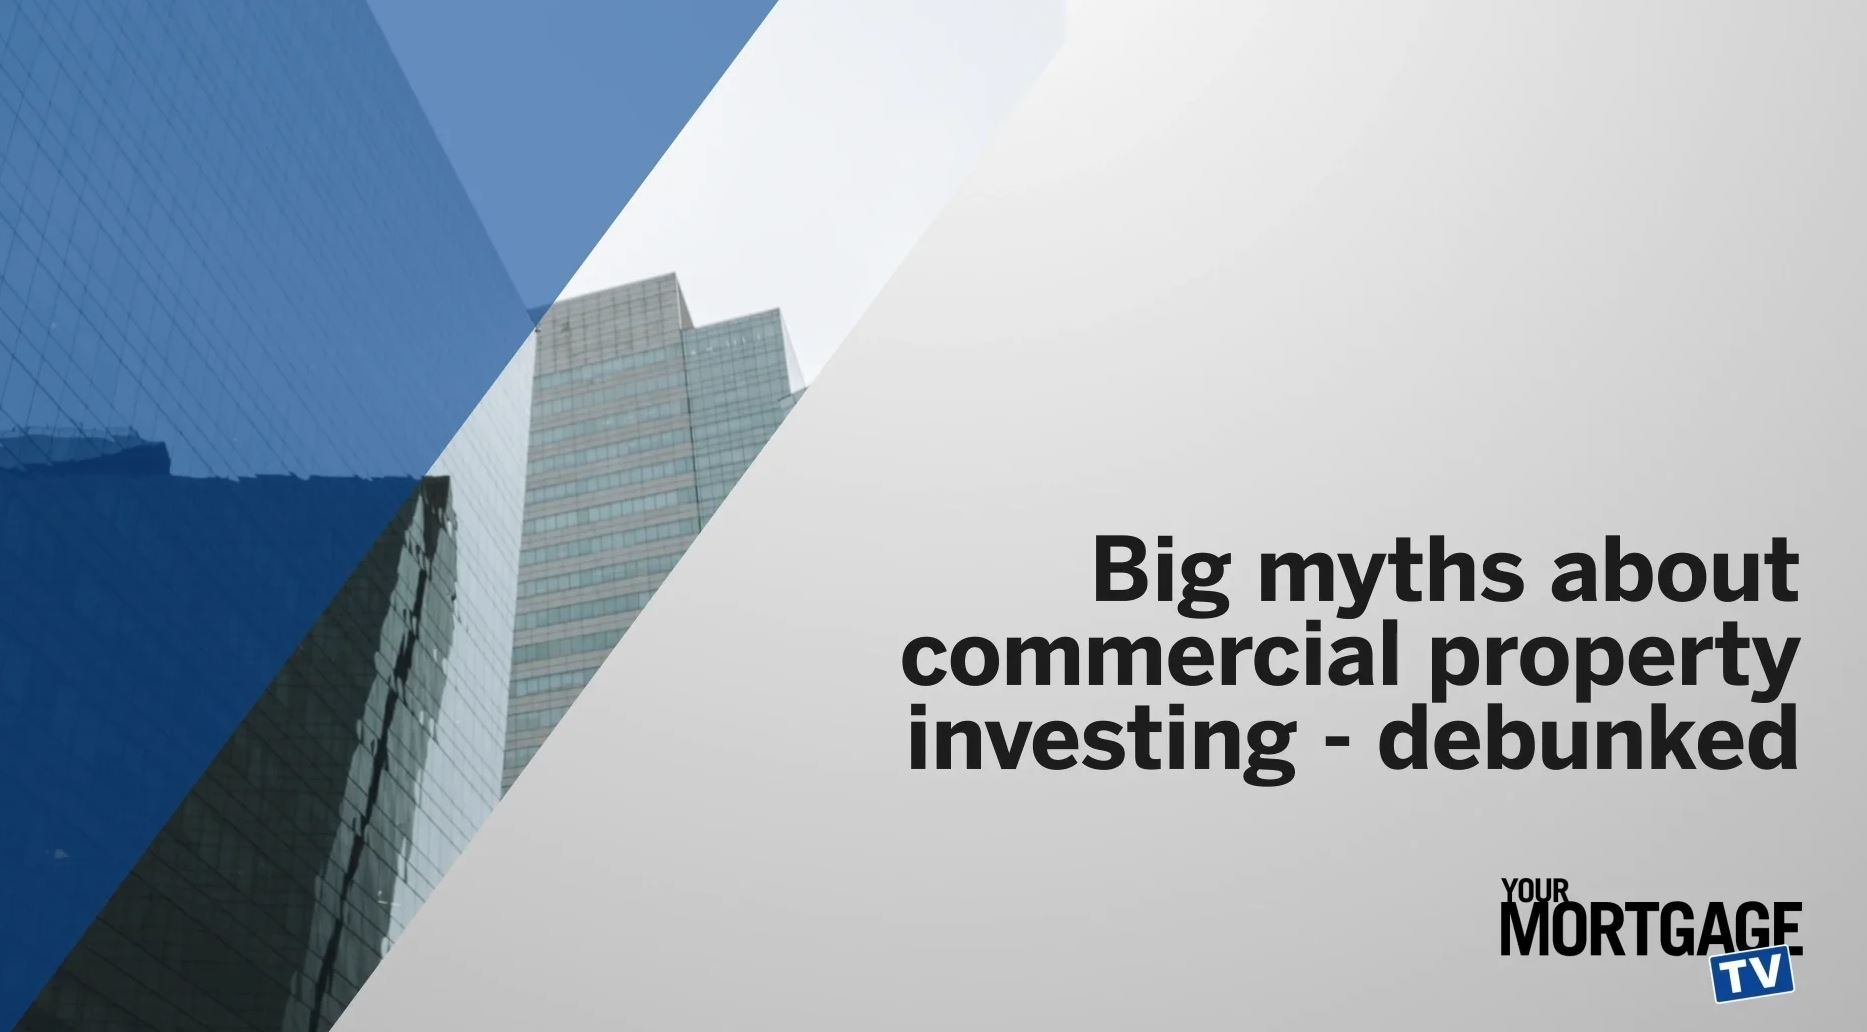 Ever considered commercial property?